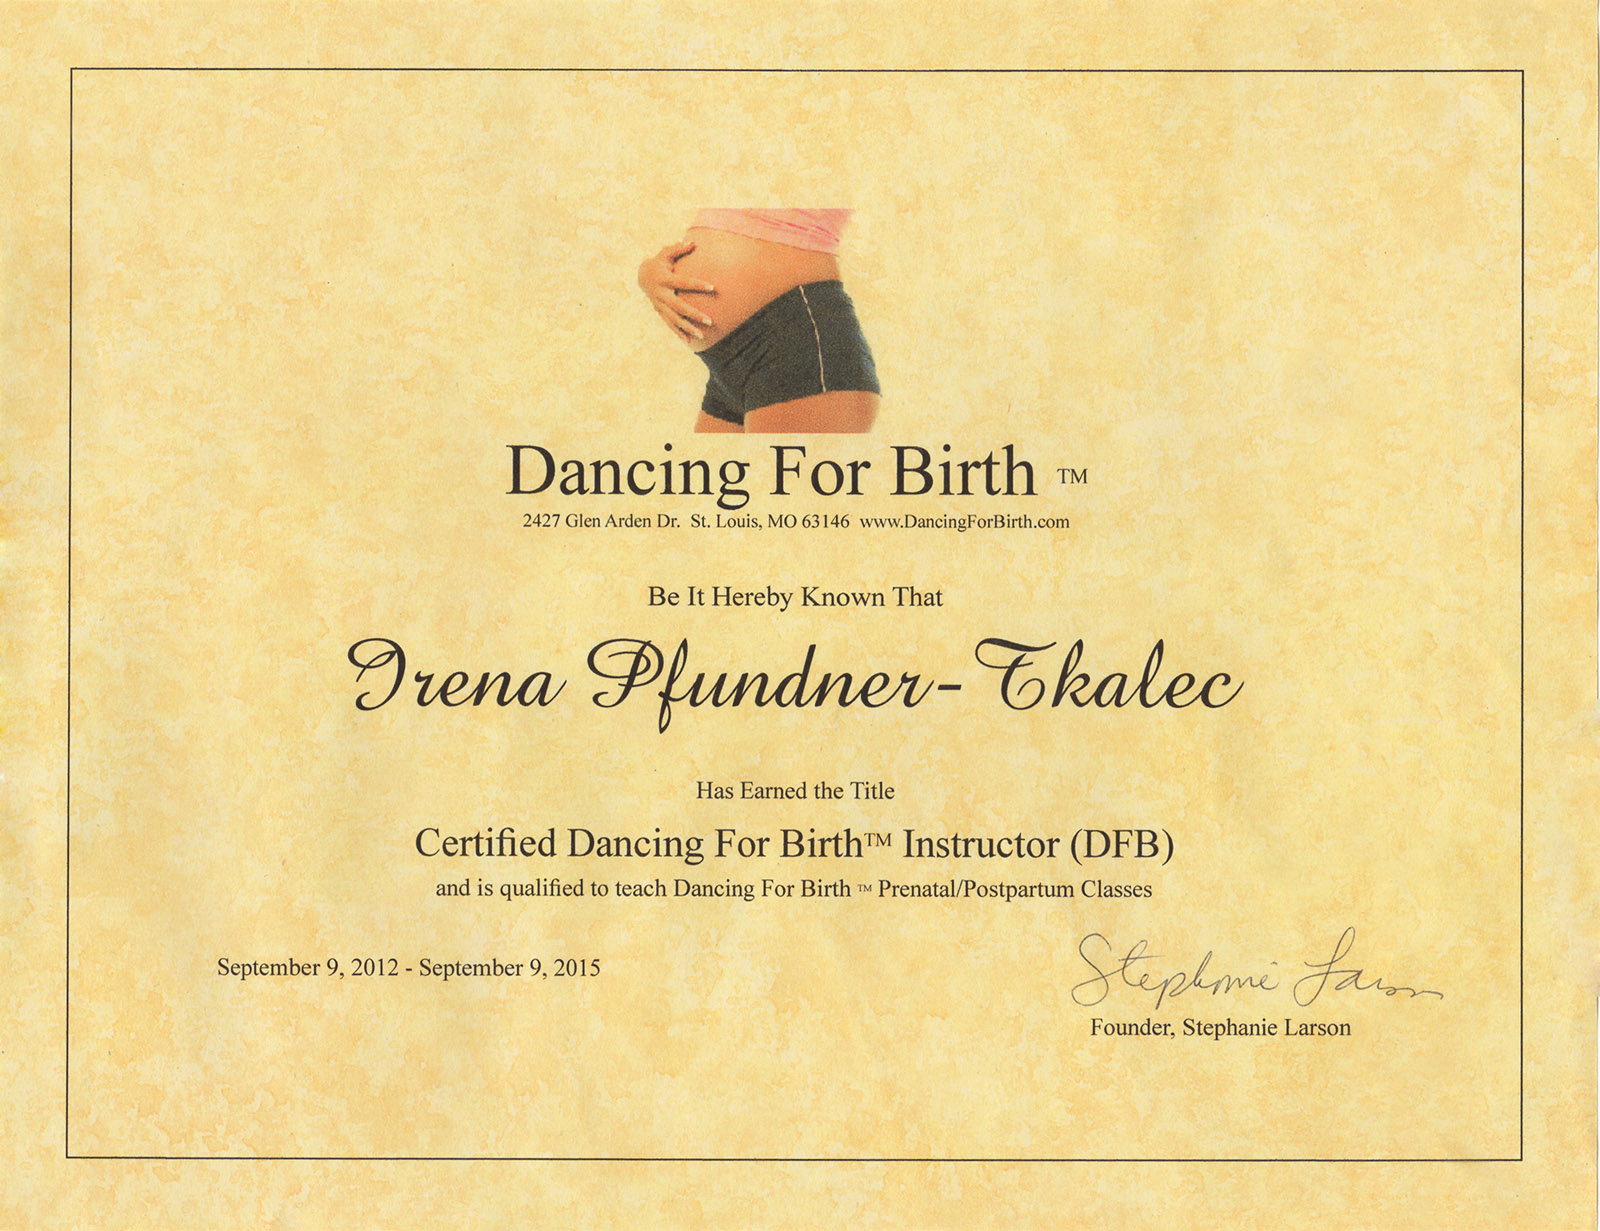 Dancing for birth